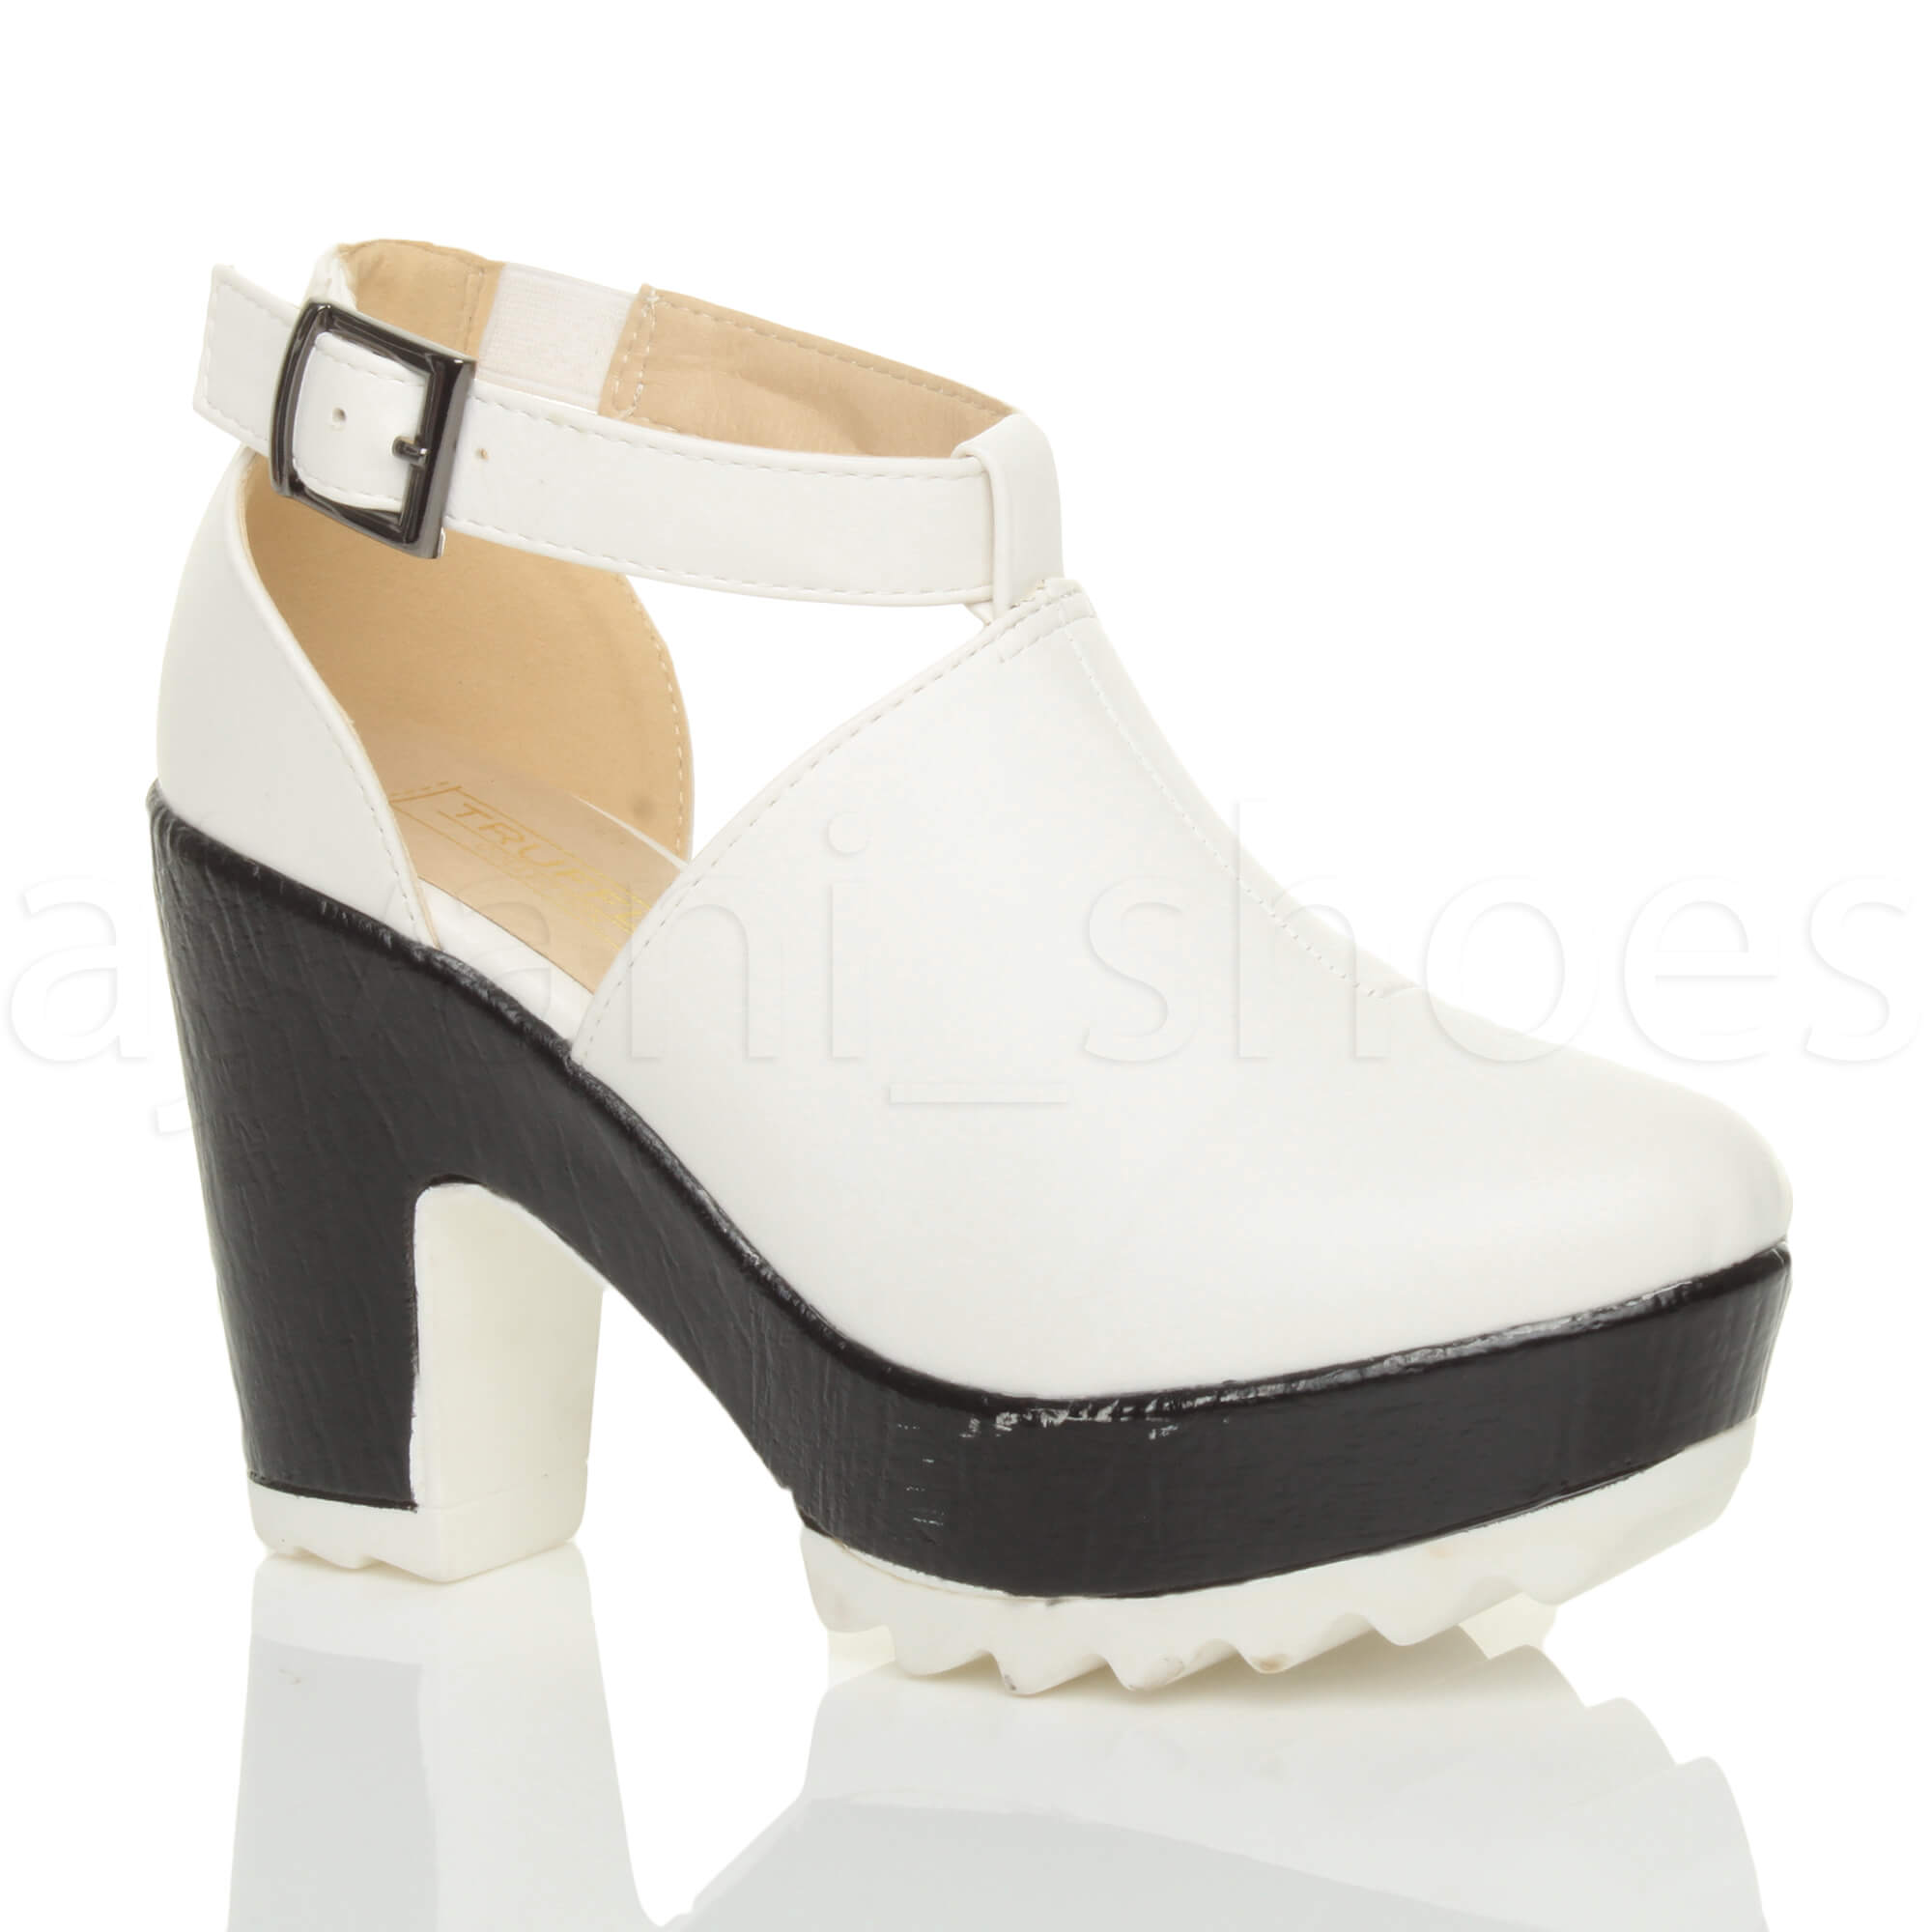 cf6d19d9bfea Image is loading WOMENS-LADIES-CHUNKY-CLEATED-CUT-OUT-PLATFORM-CONTRAST-